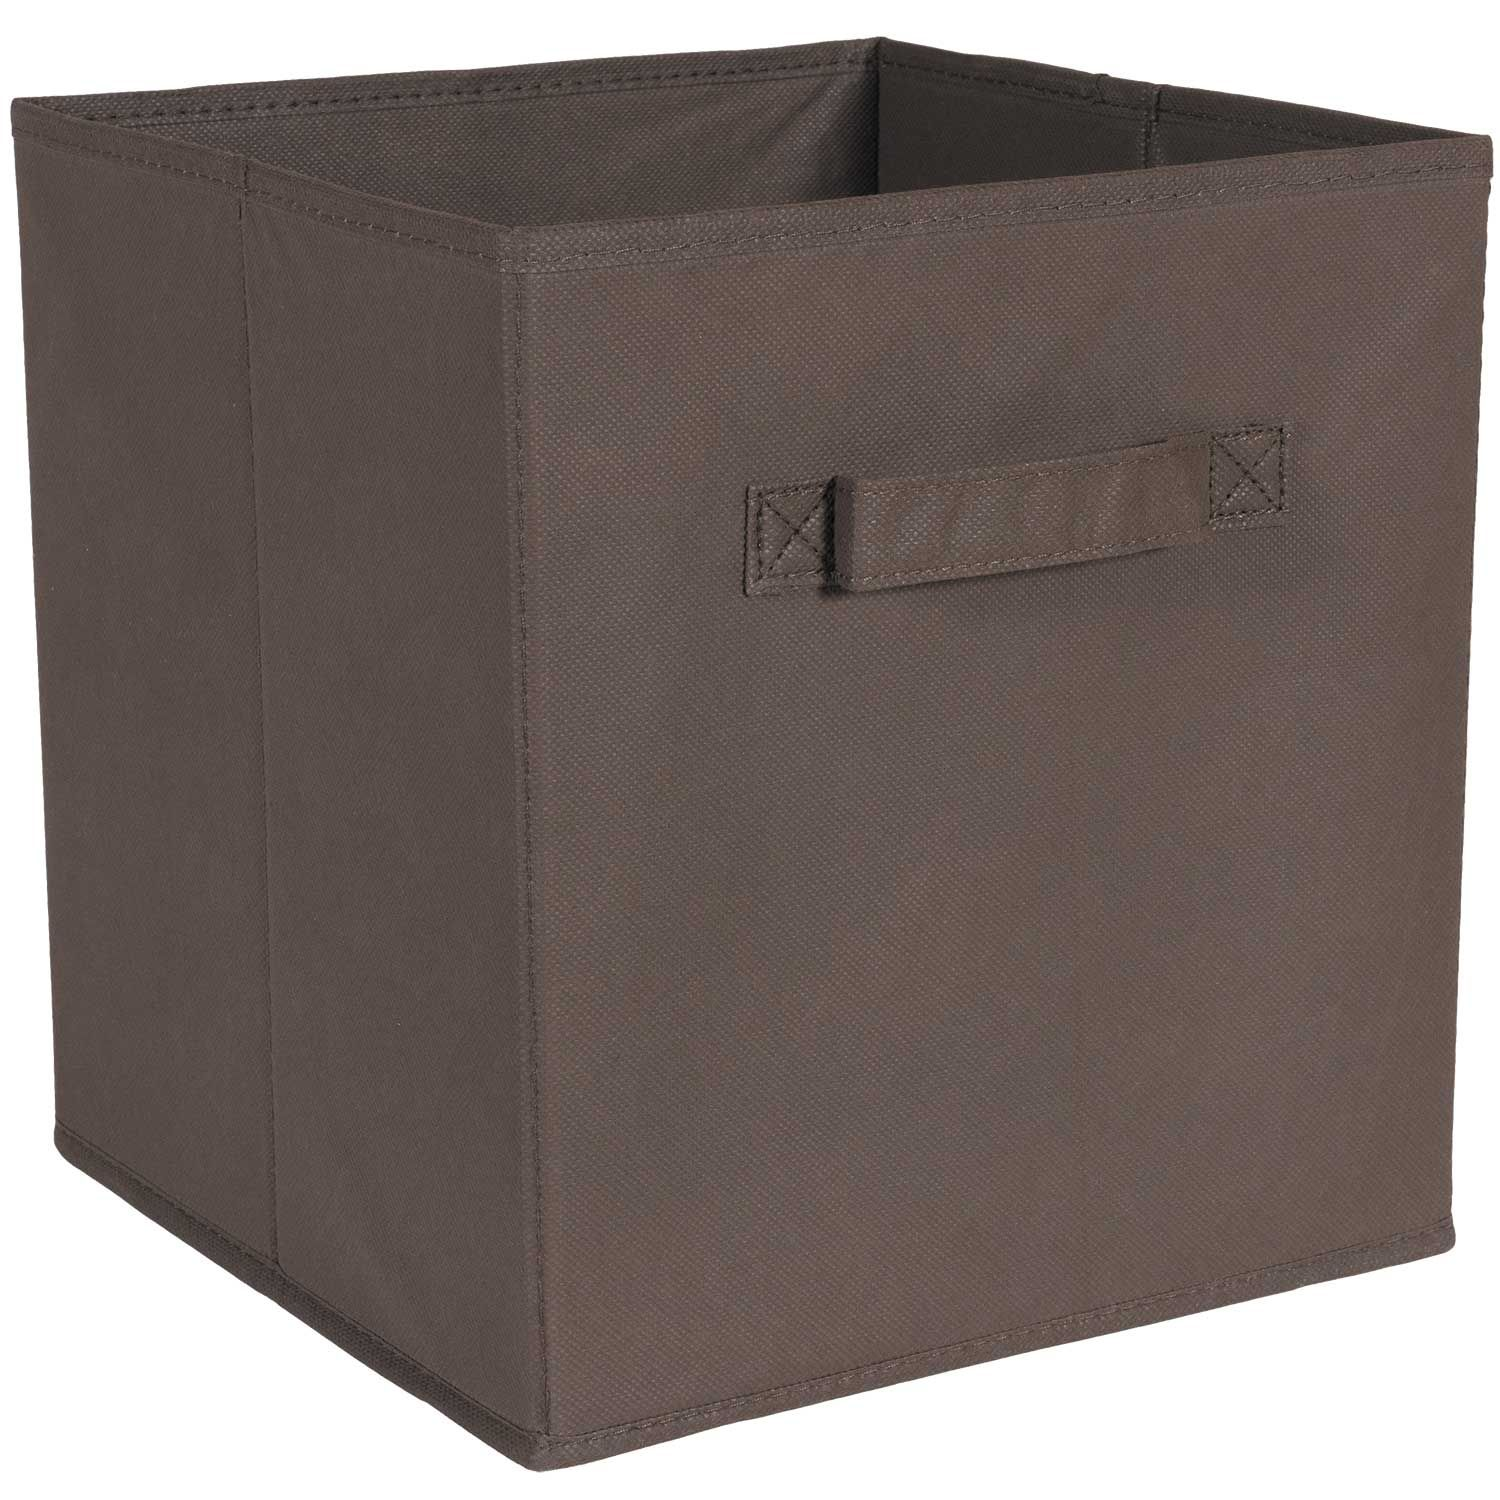 SystemBuild Brown Fabric Bin